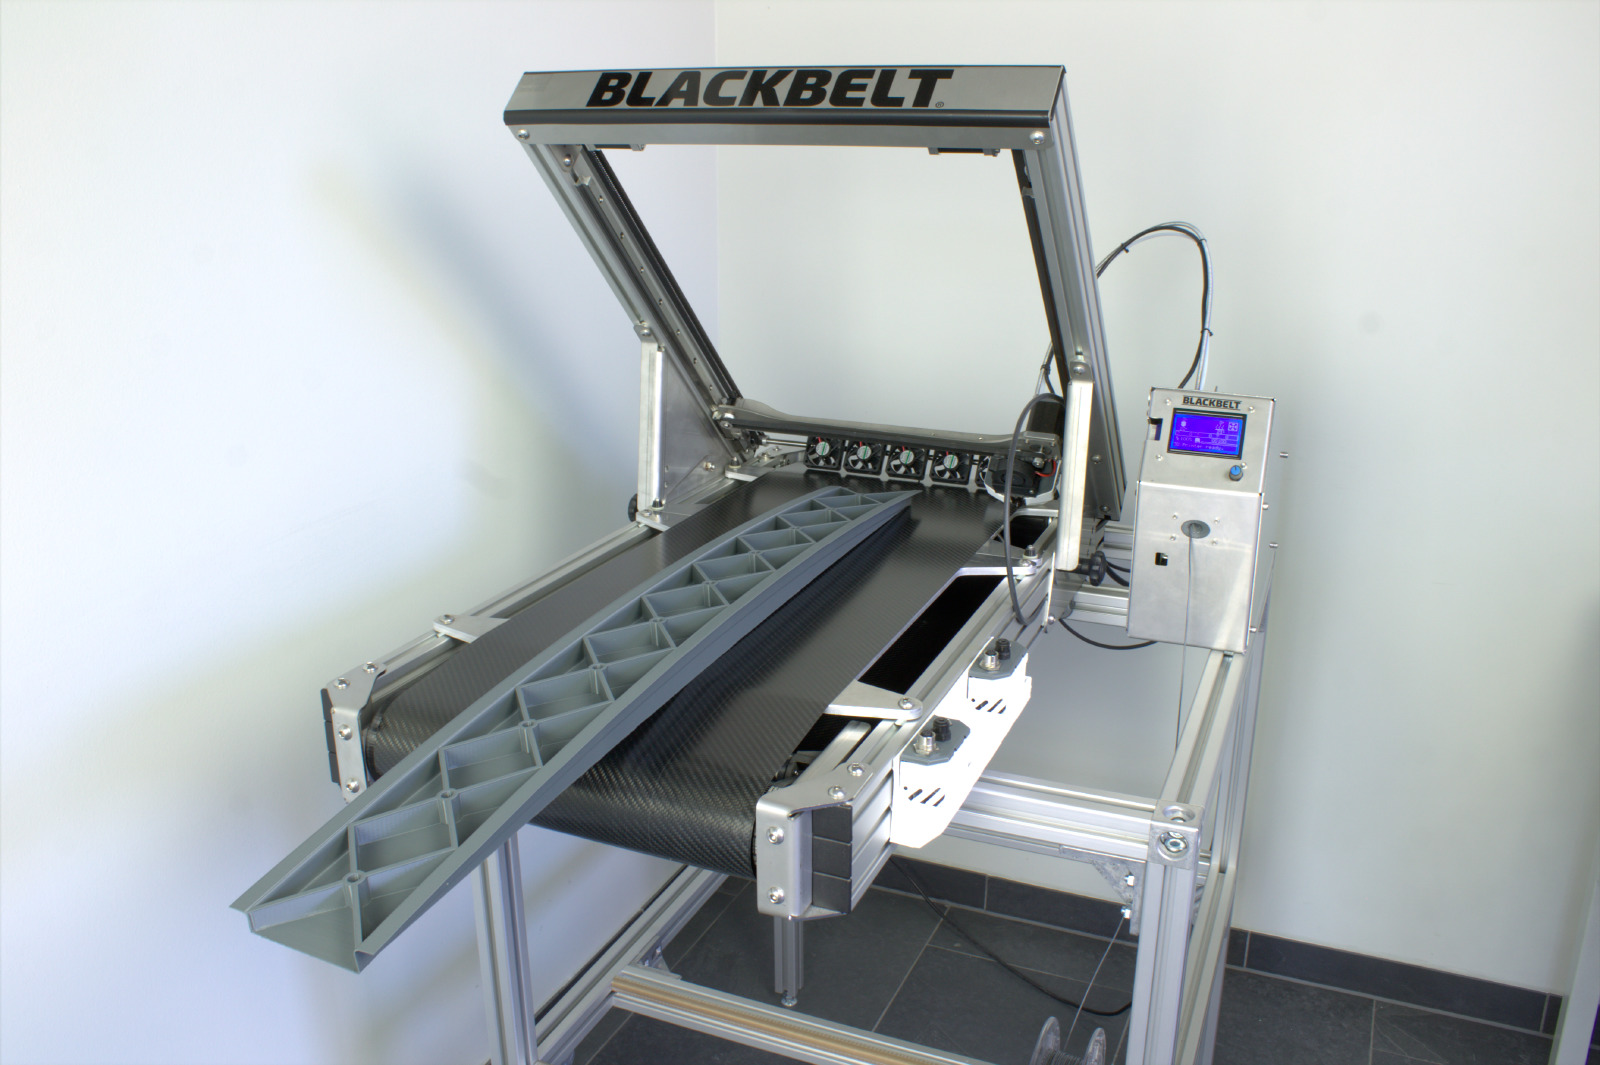 Blackbelt show the size of a 3D printed part without the roller table. Photo via Blackbelt.